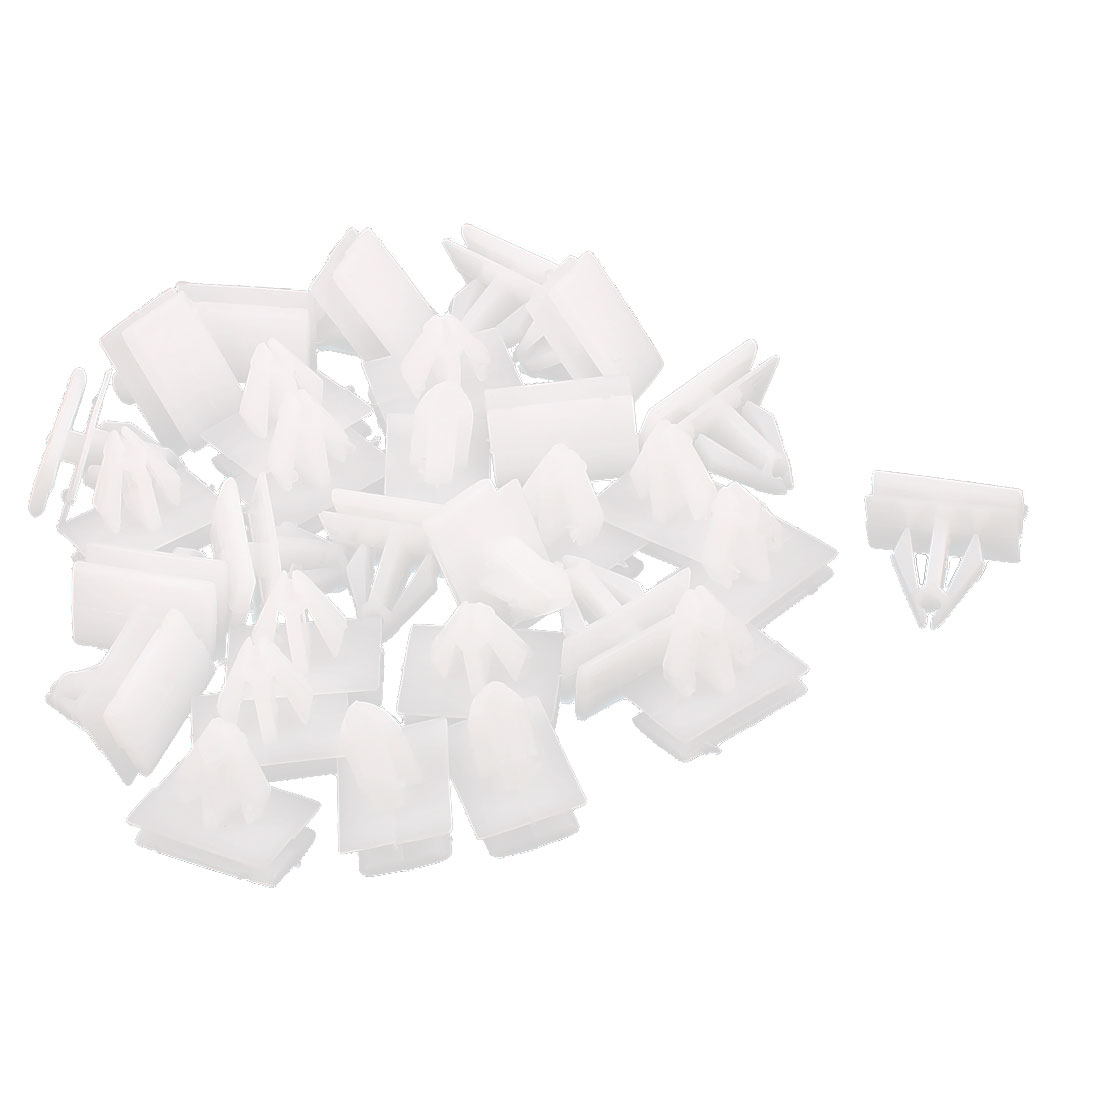 30 Pcs White Plastic Splash Defender Push-Type Fastener Rivet for Buick Excelle